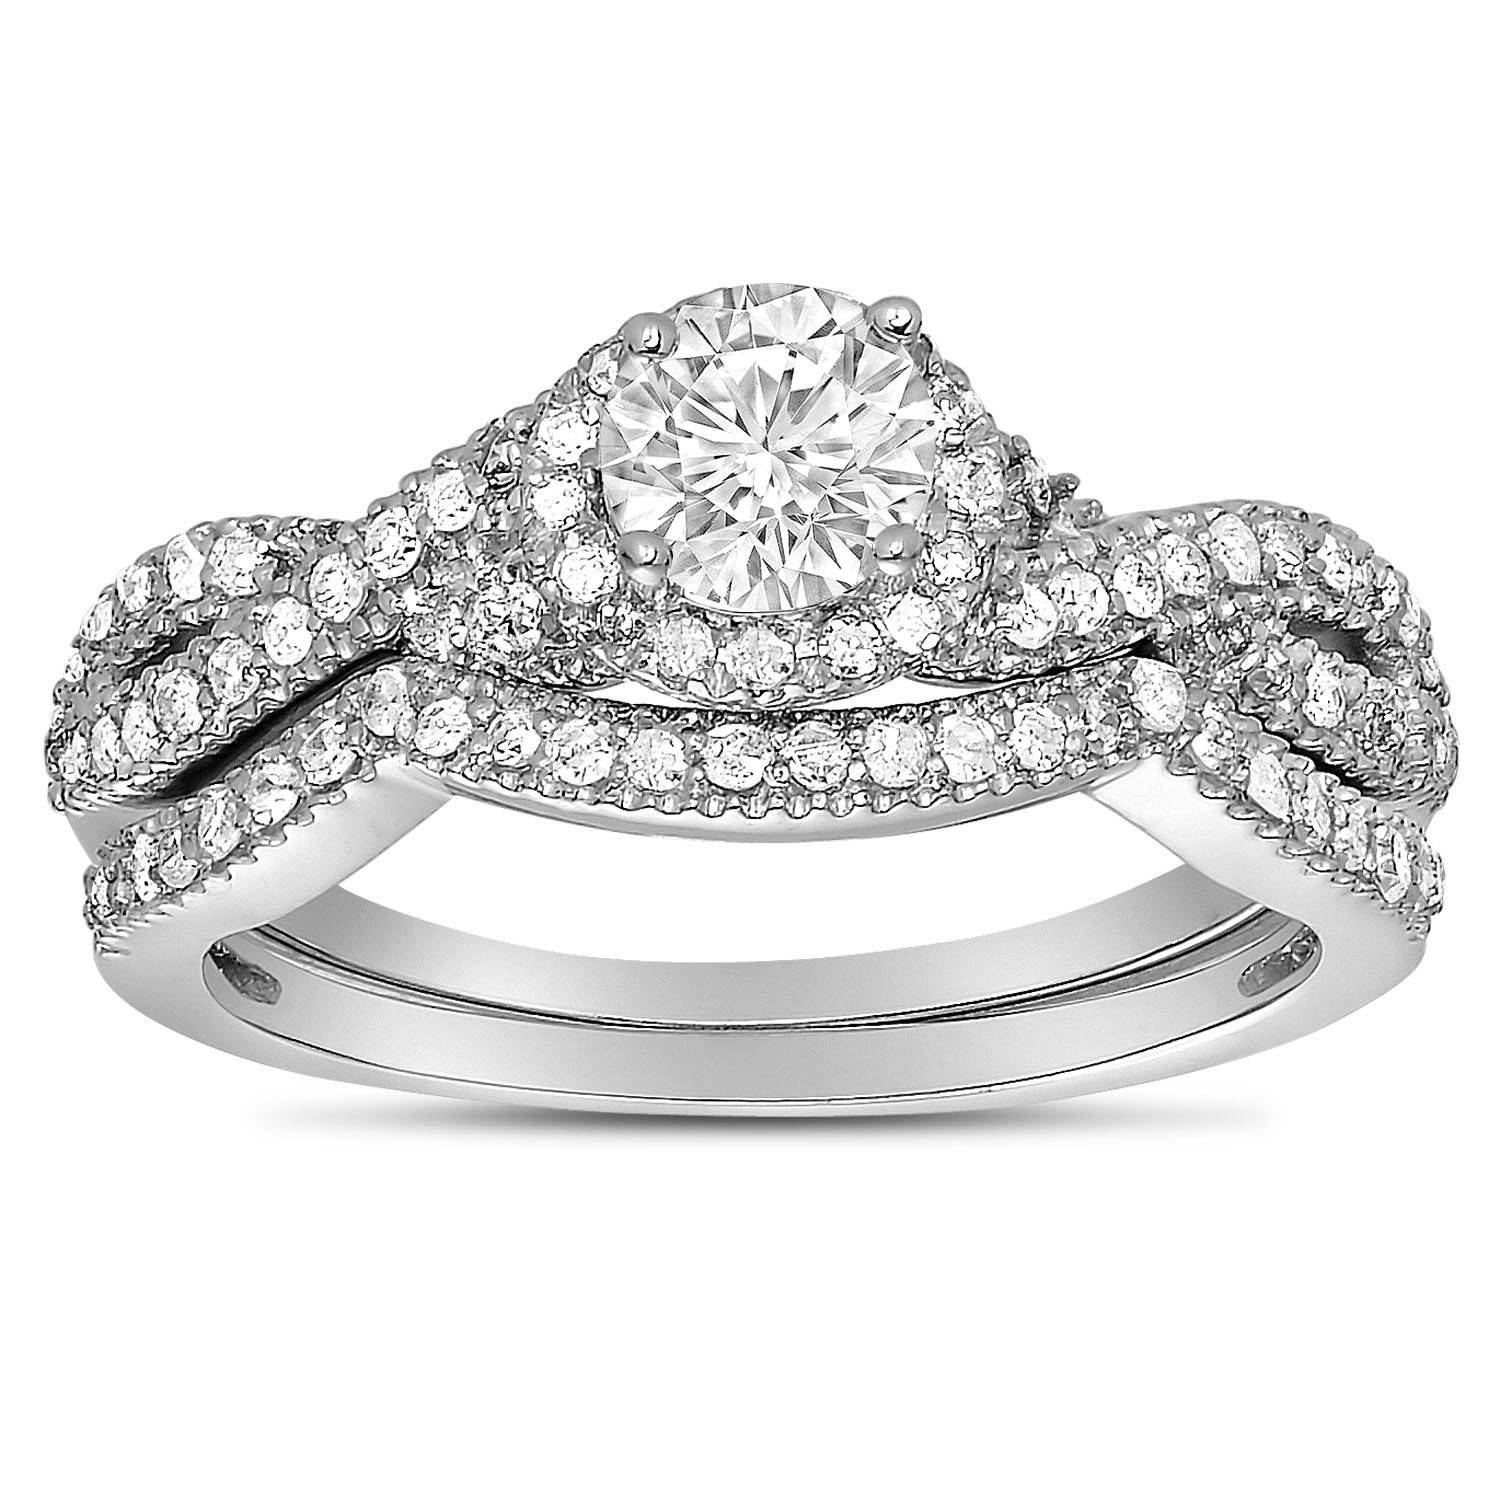 2 Carat Round Diamond Infinity Wedding Ring Set In White Gold For Throughout Infinity Wedding Bands Sets (Gallery 11 of 15)